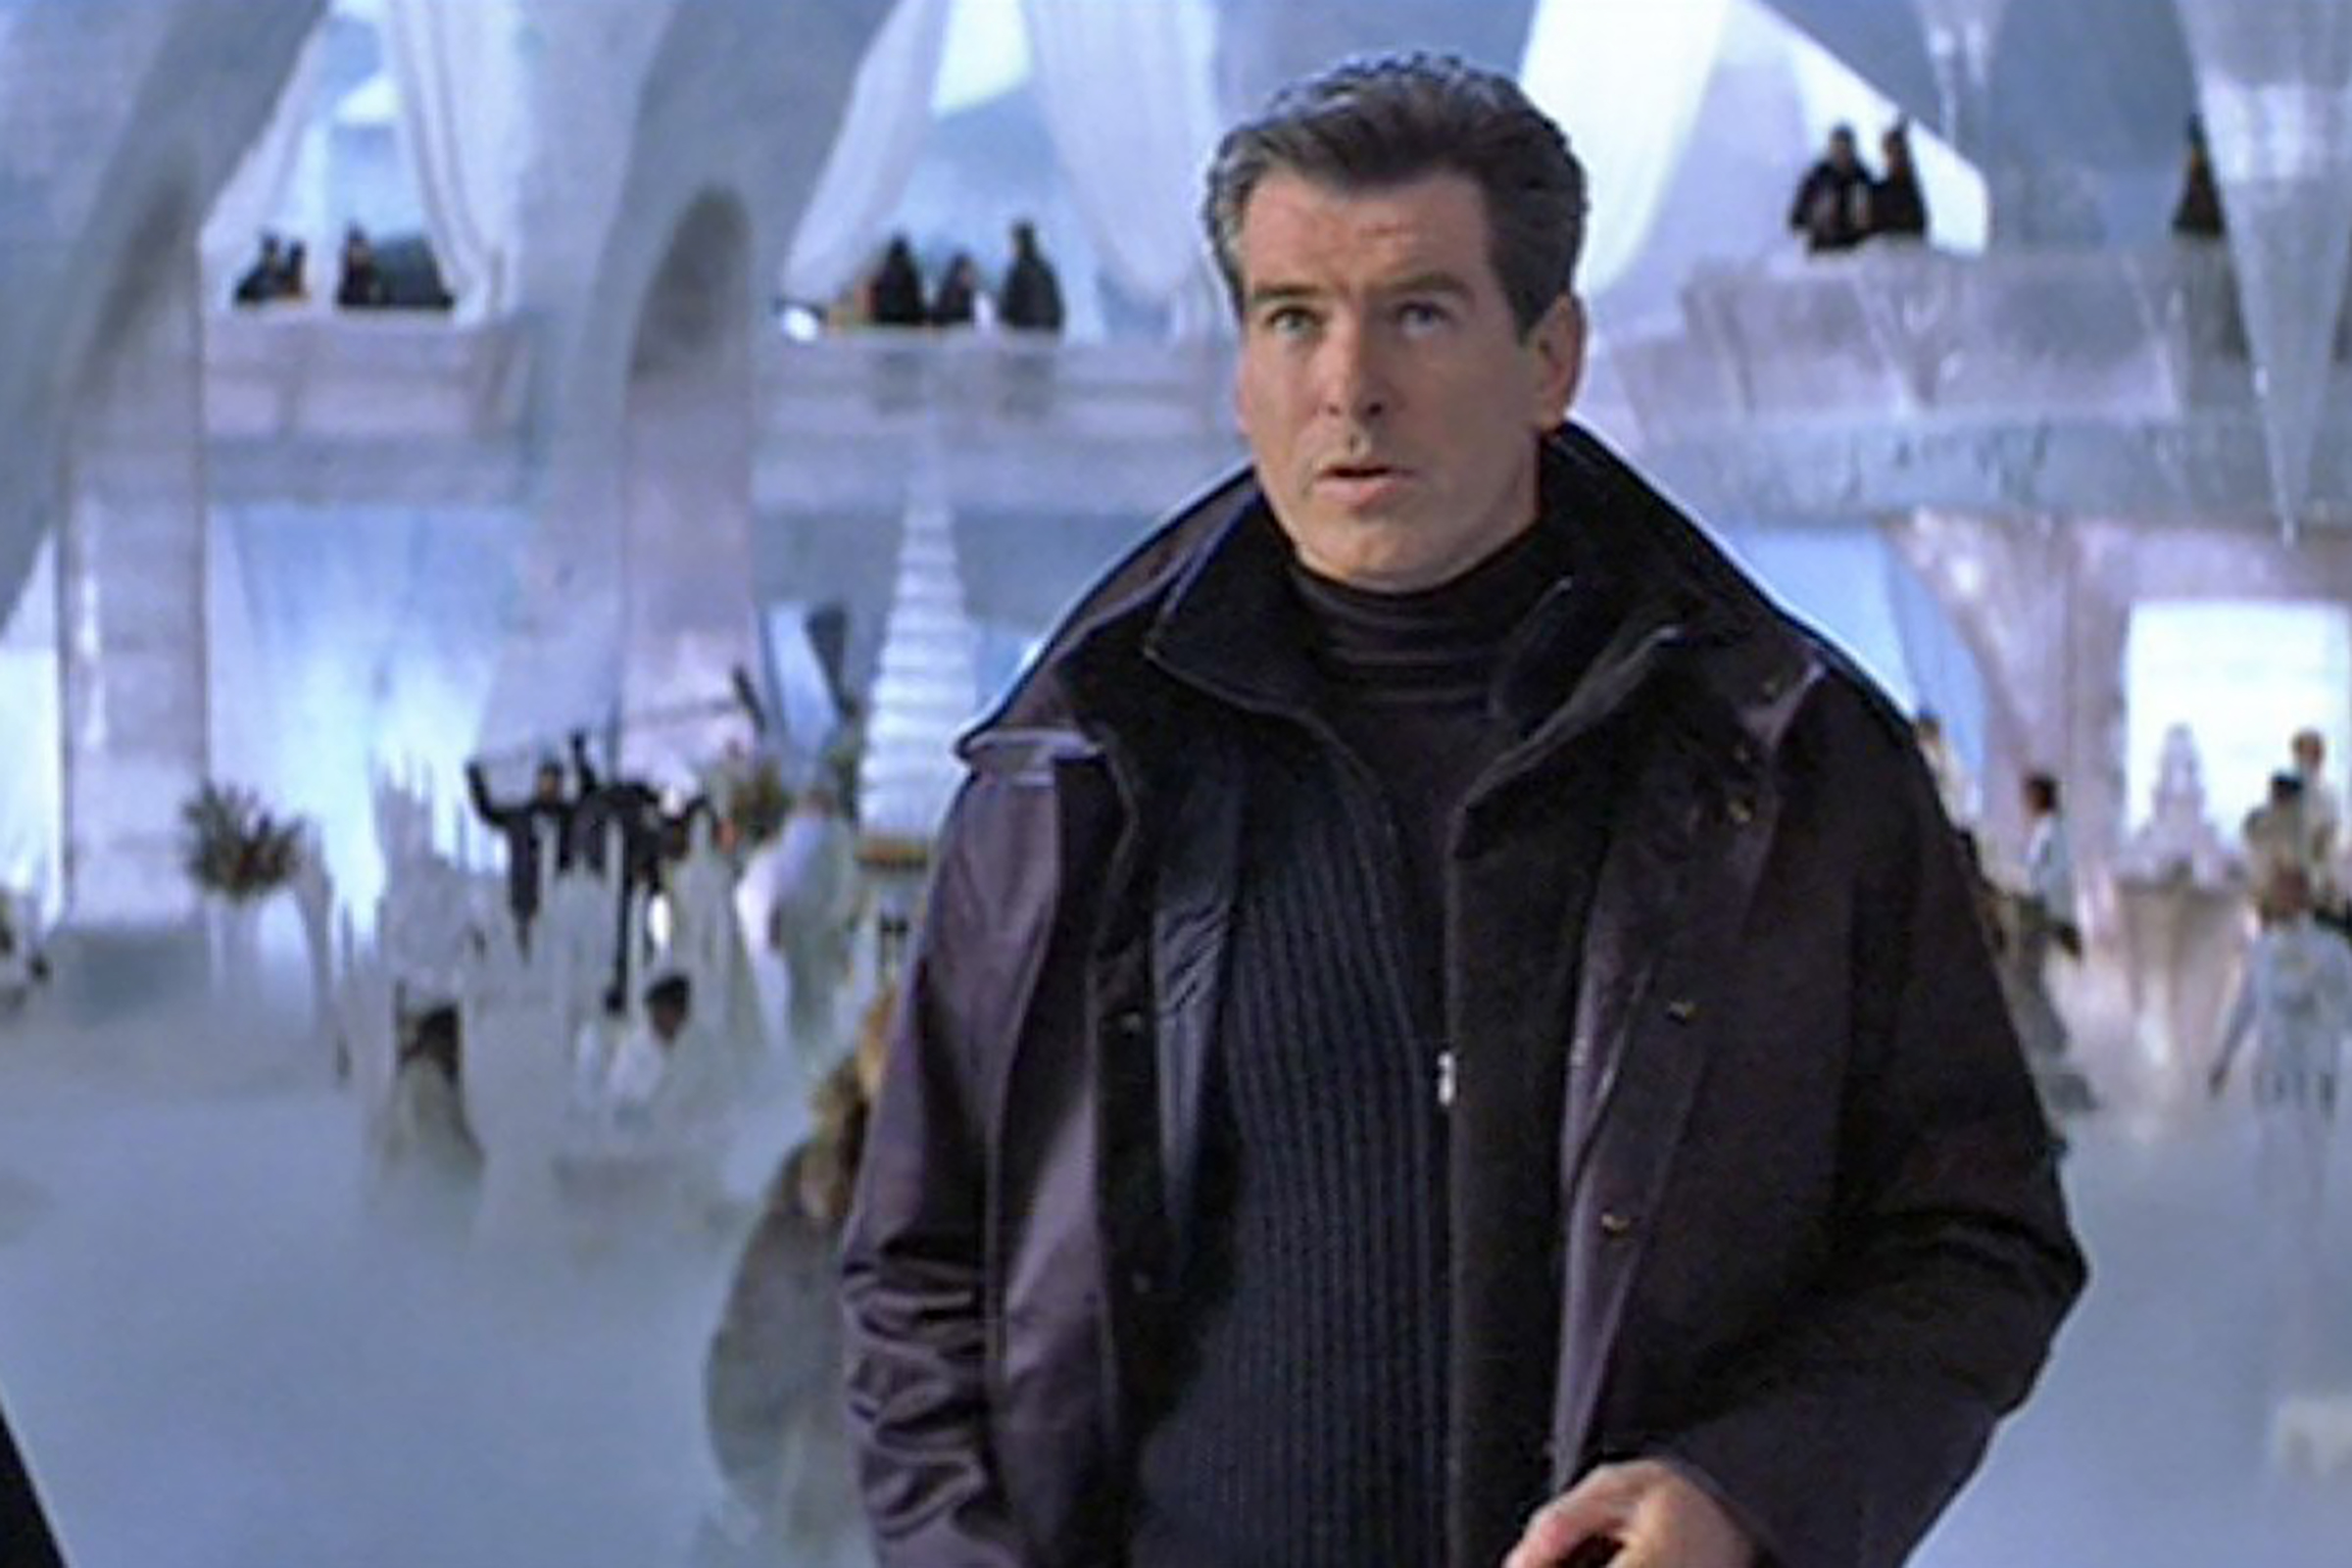 Brosnan layers a winter coat, a half zip sweater and a turtleneck in Die Another Day.